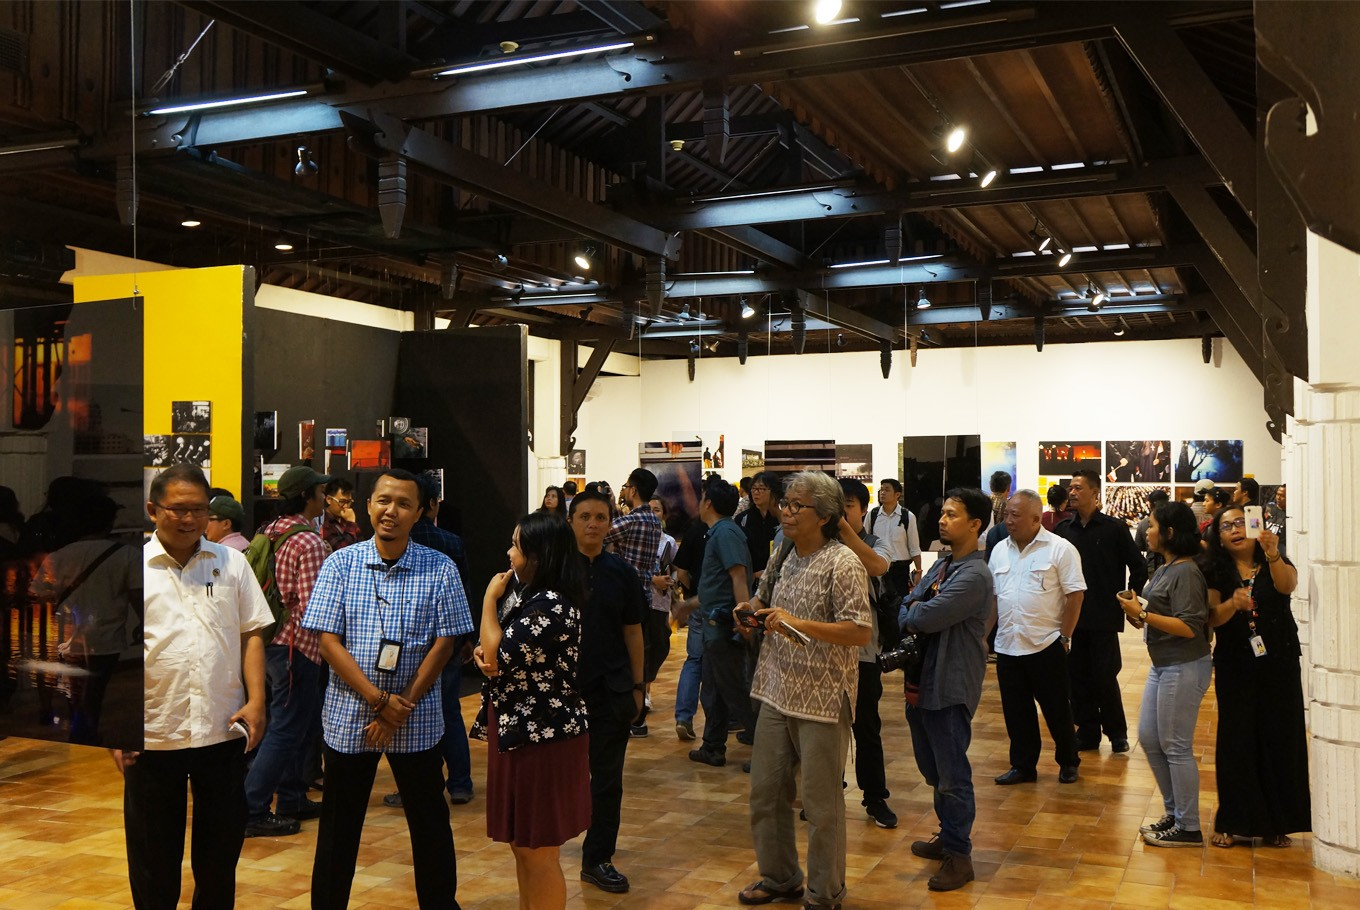 Photo enthusiasts at the Kompas Photography Festival's opening night, Feb. 6, at Bentara Budaya in Palmerah, South Jakarta. (JP/Masajeng Rahmiasri)